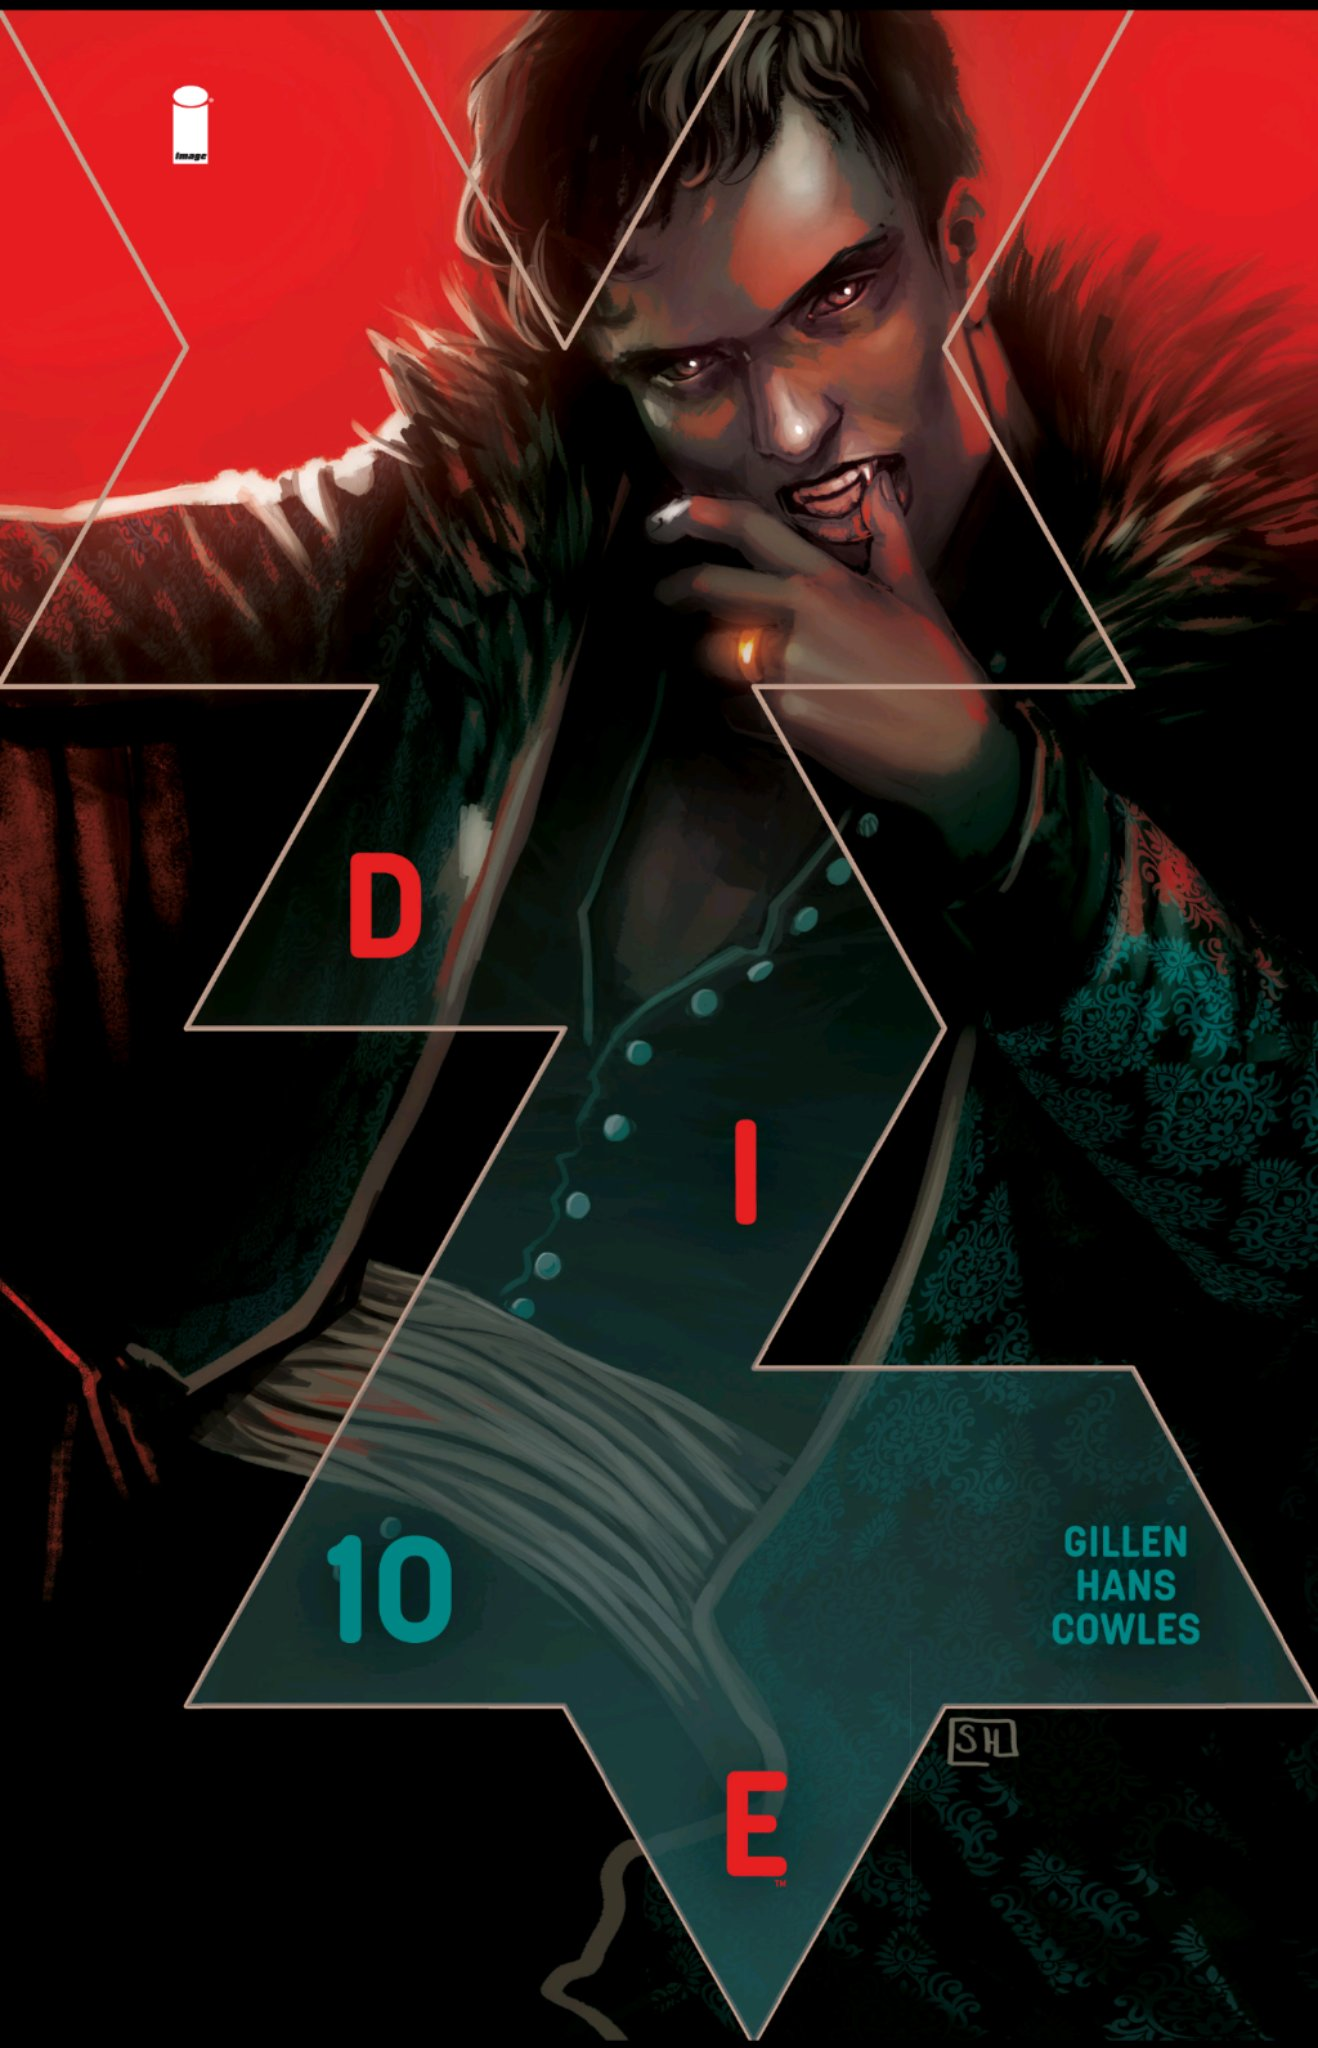 Cover of Die #10. A vampire in a fur-lined jacket reclines with his shirt half unbuttoned.